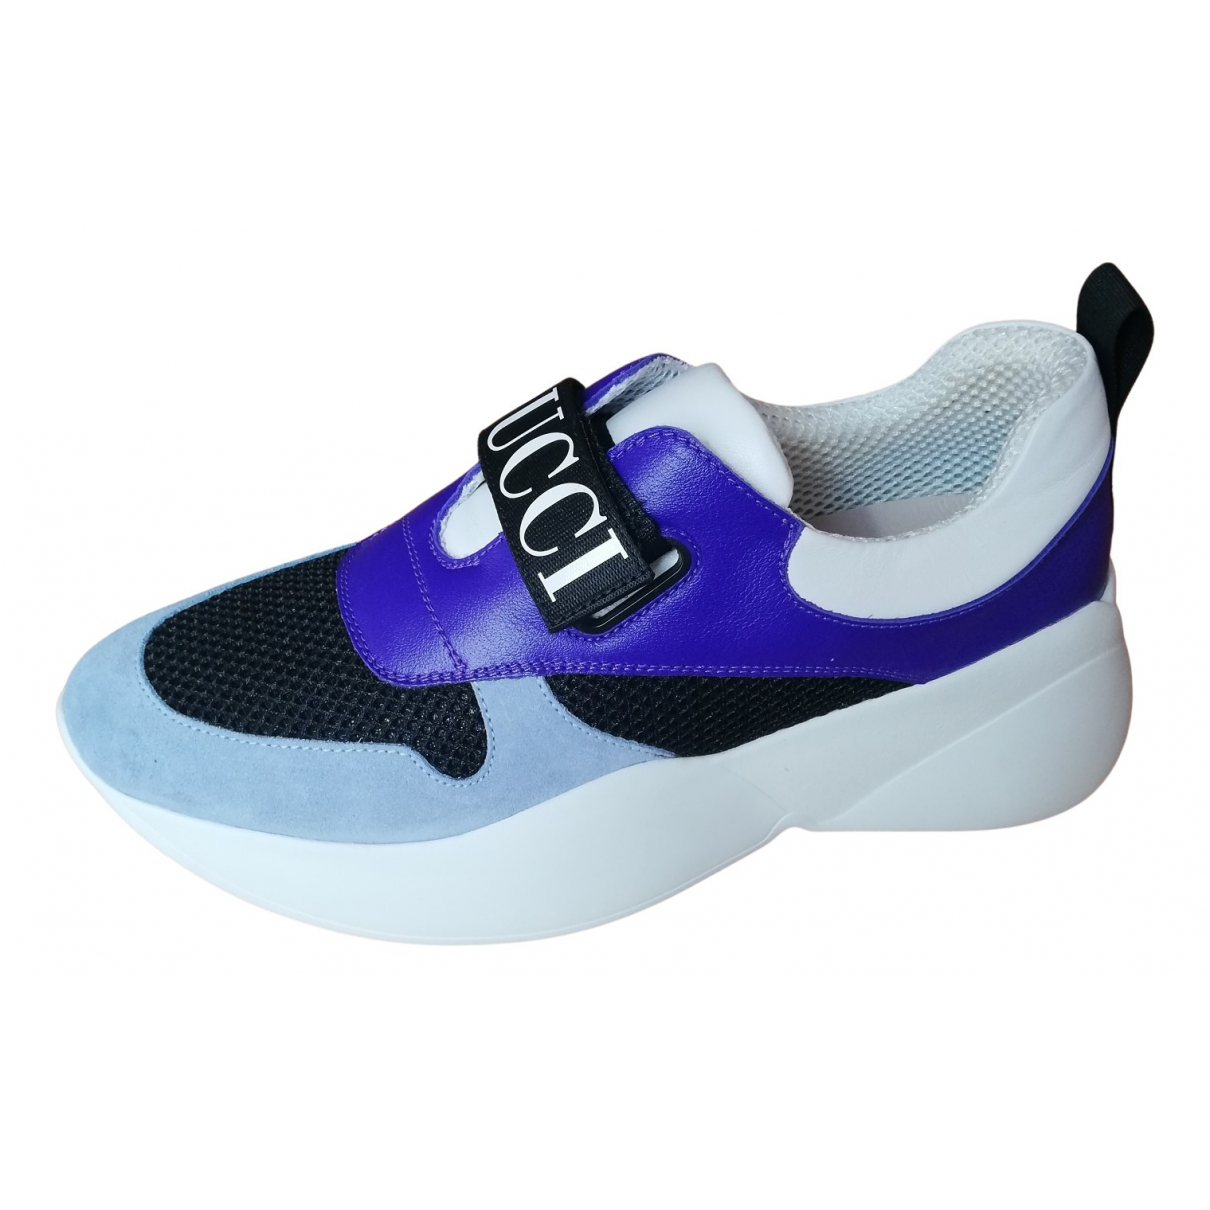 Emilio Pucci \N Sneakers in  Lila Polyester